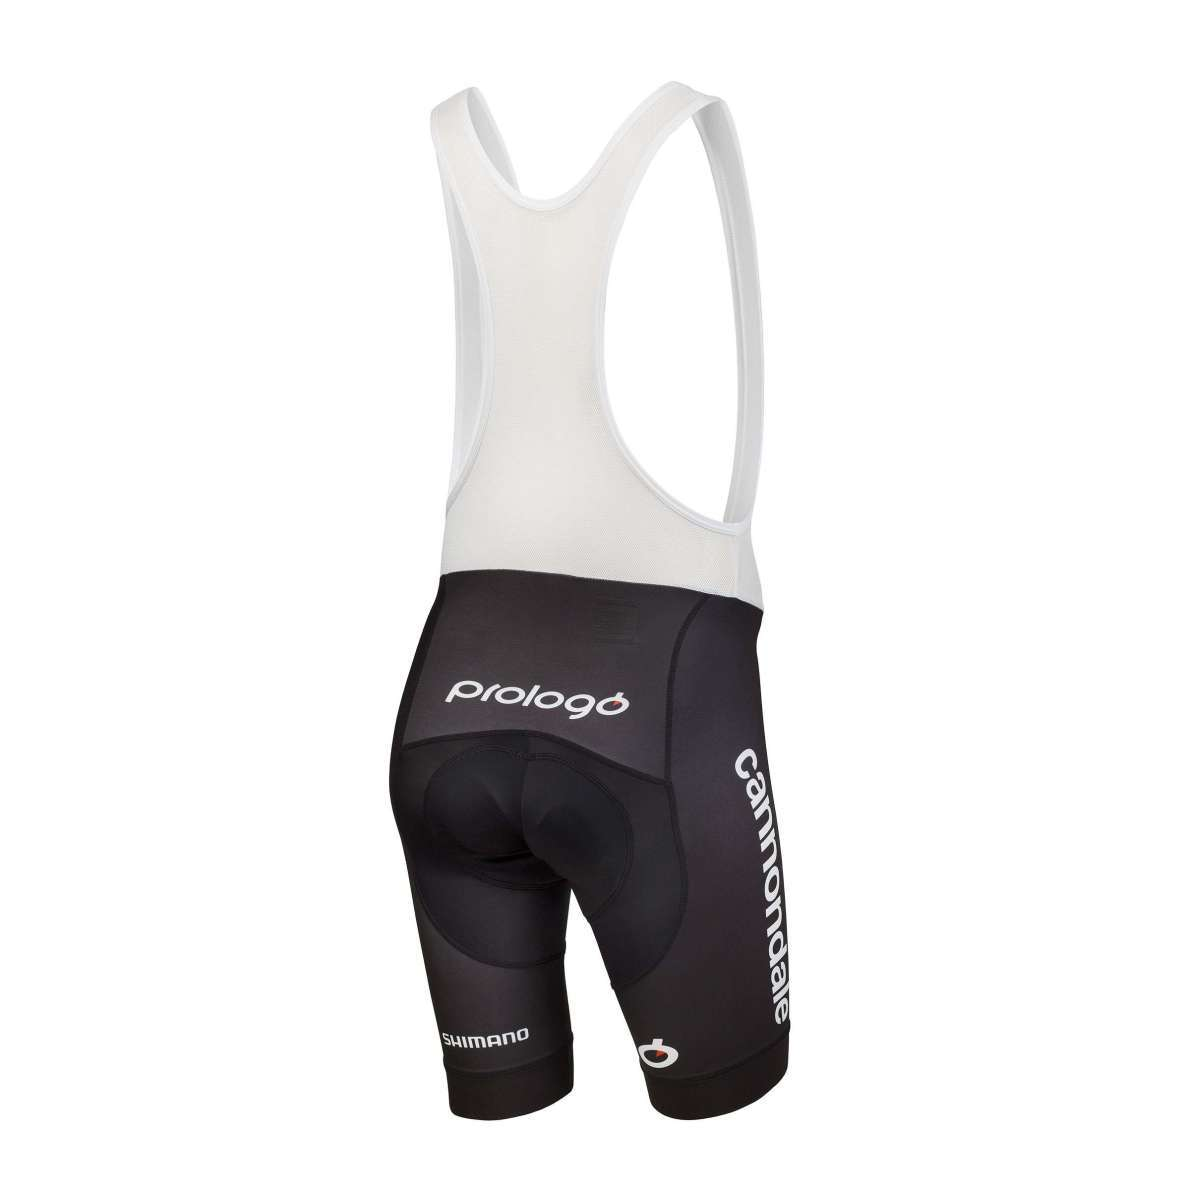 Cannondale Factory Racing 2020 Bibshorts für Herren